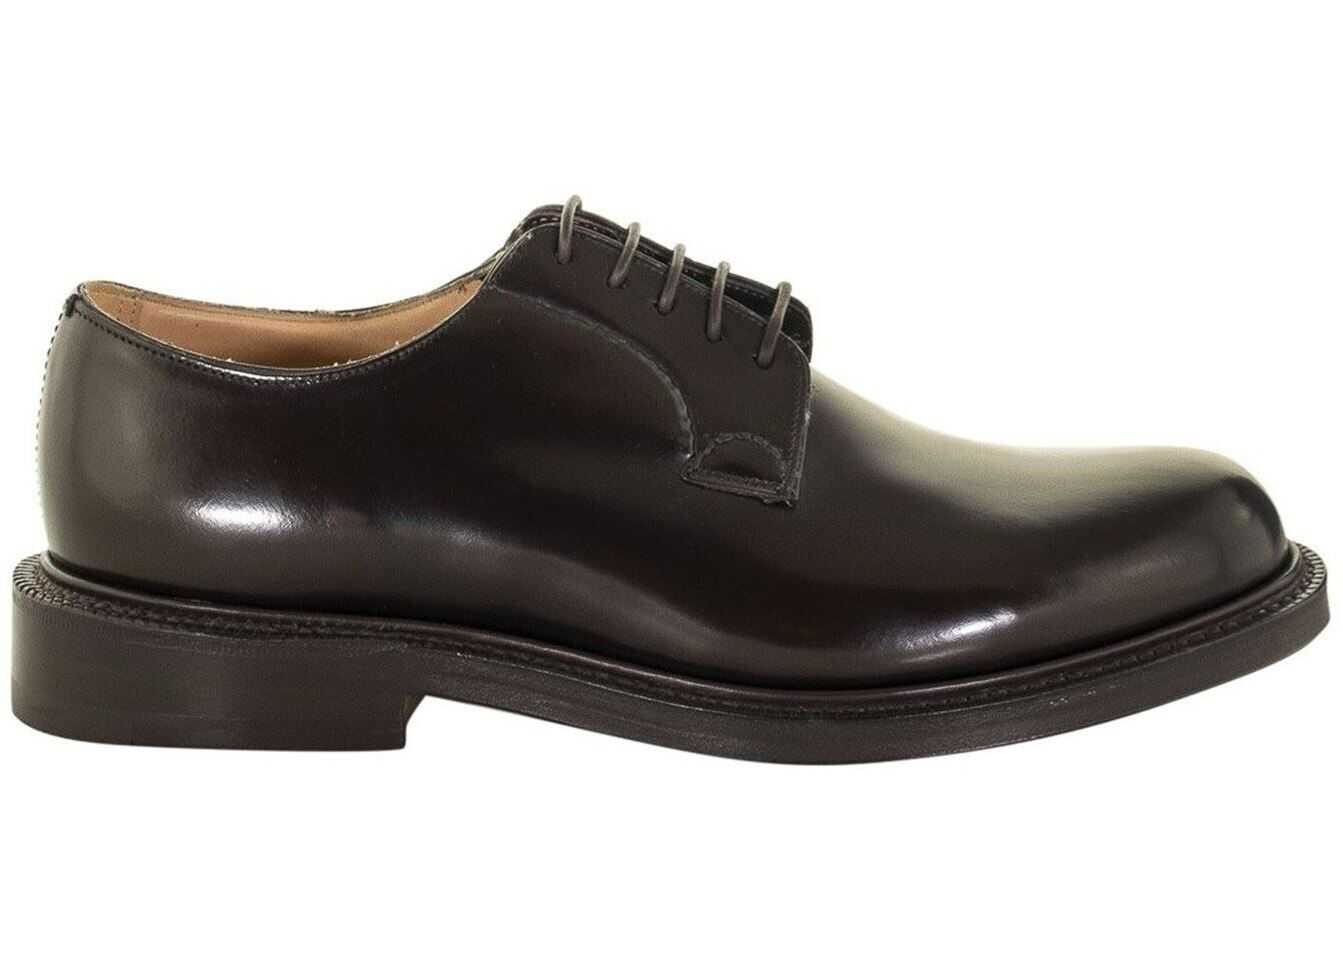 Church's Shannon Brown Polished Leather Derby Shoes EEB001 9XV F0AMA Brown imagine b-mall.ro